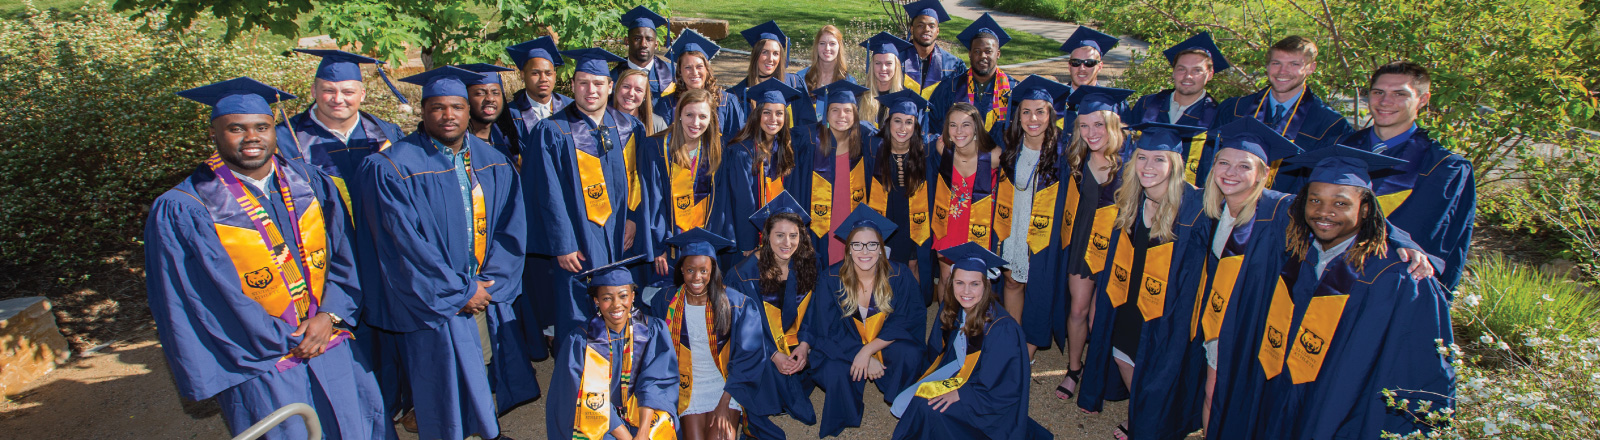 Blue and Gold Student-Athlete Graduates